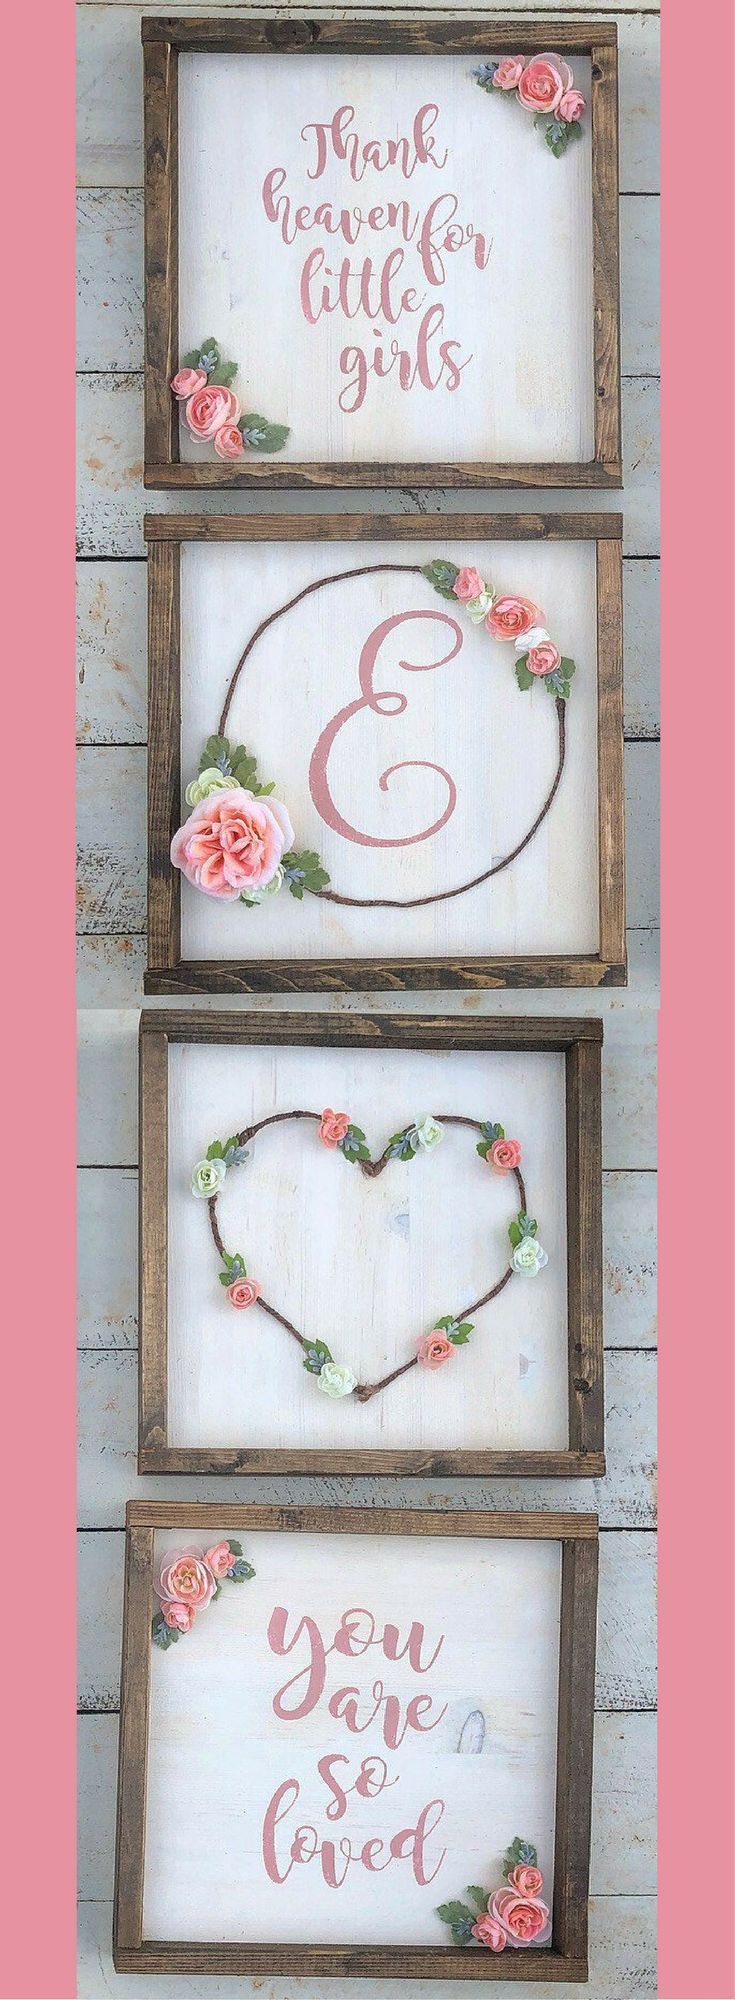 "Floral flower Nursery ""you are so loved "" Initial, heart, and ""thank heaven for little girls"" succulents rustic frame wood sign set, rustic nursery decor, nursery wall art, rustic decor, farmhouse nursery decor #ad"